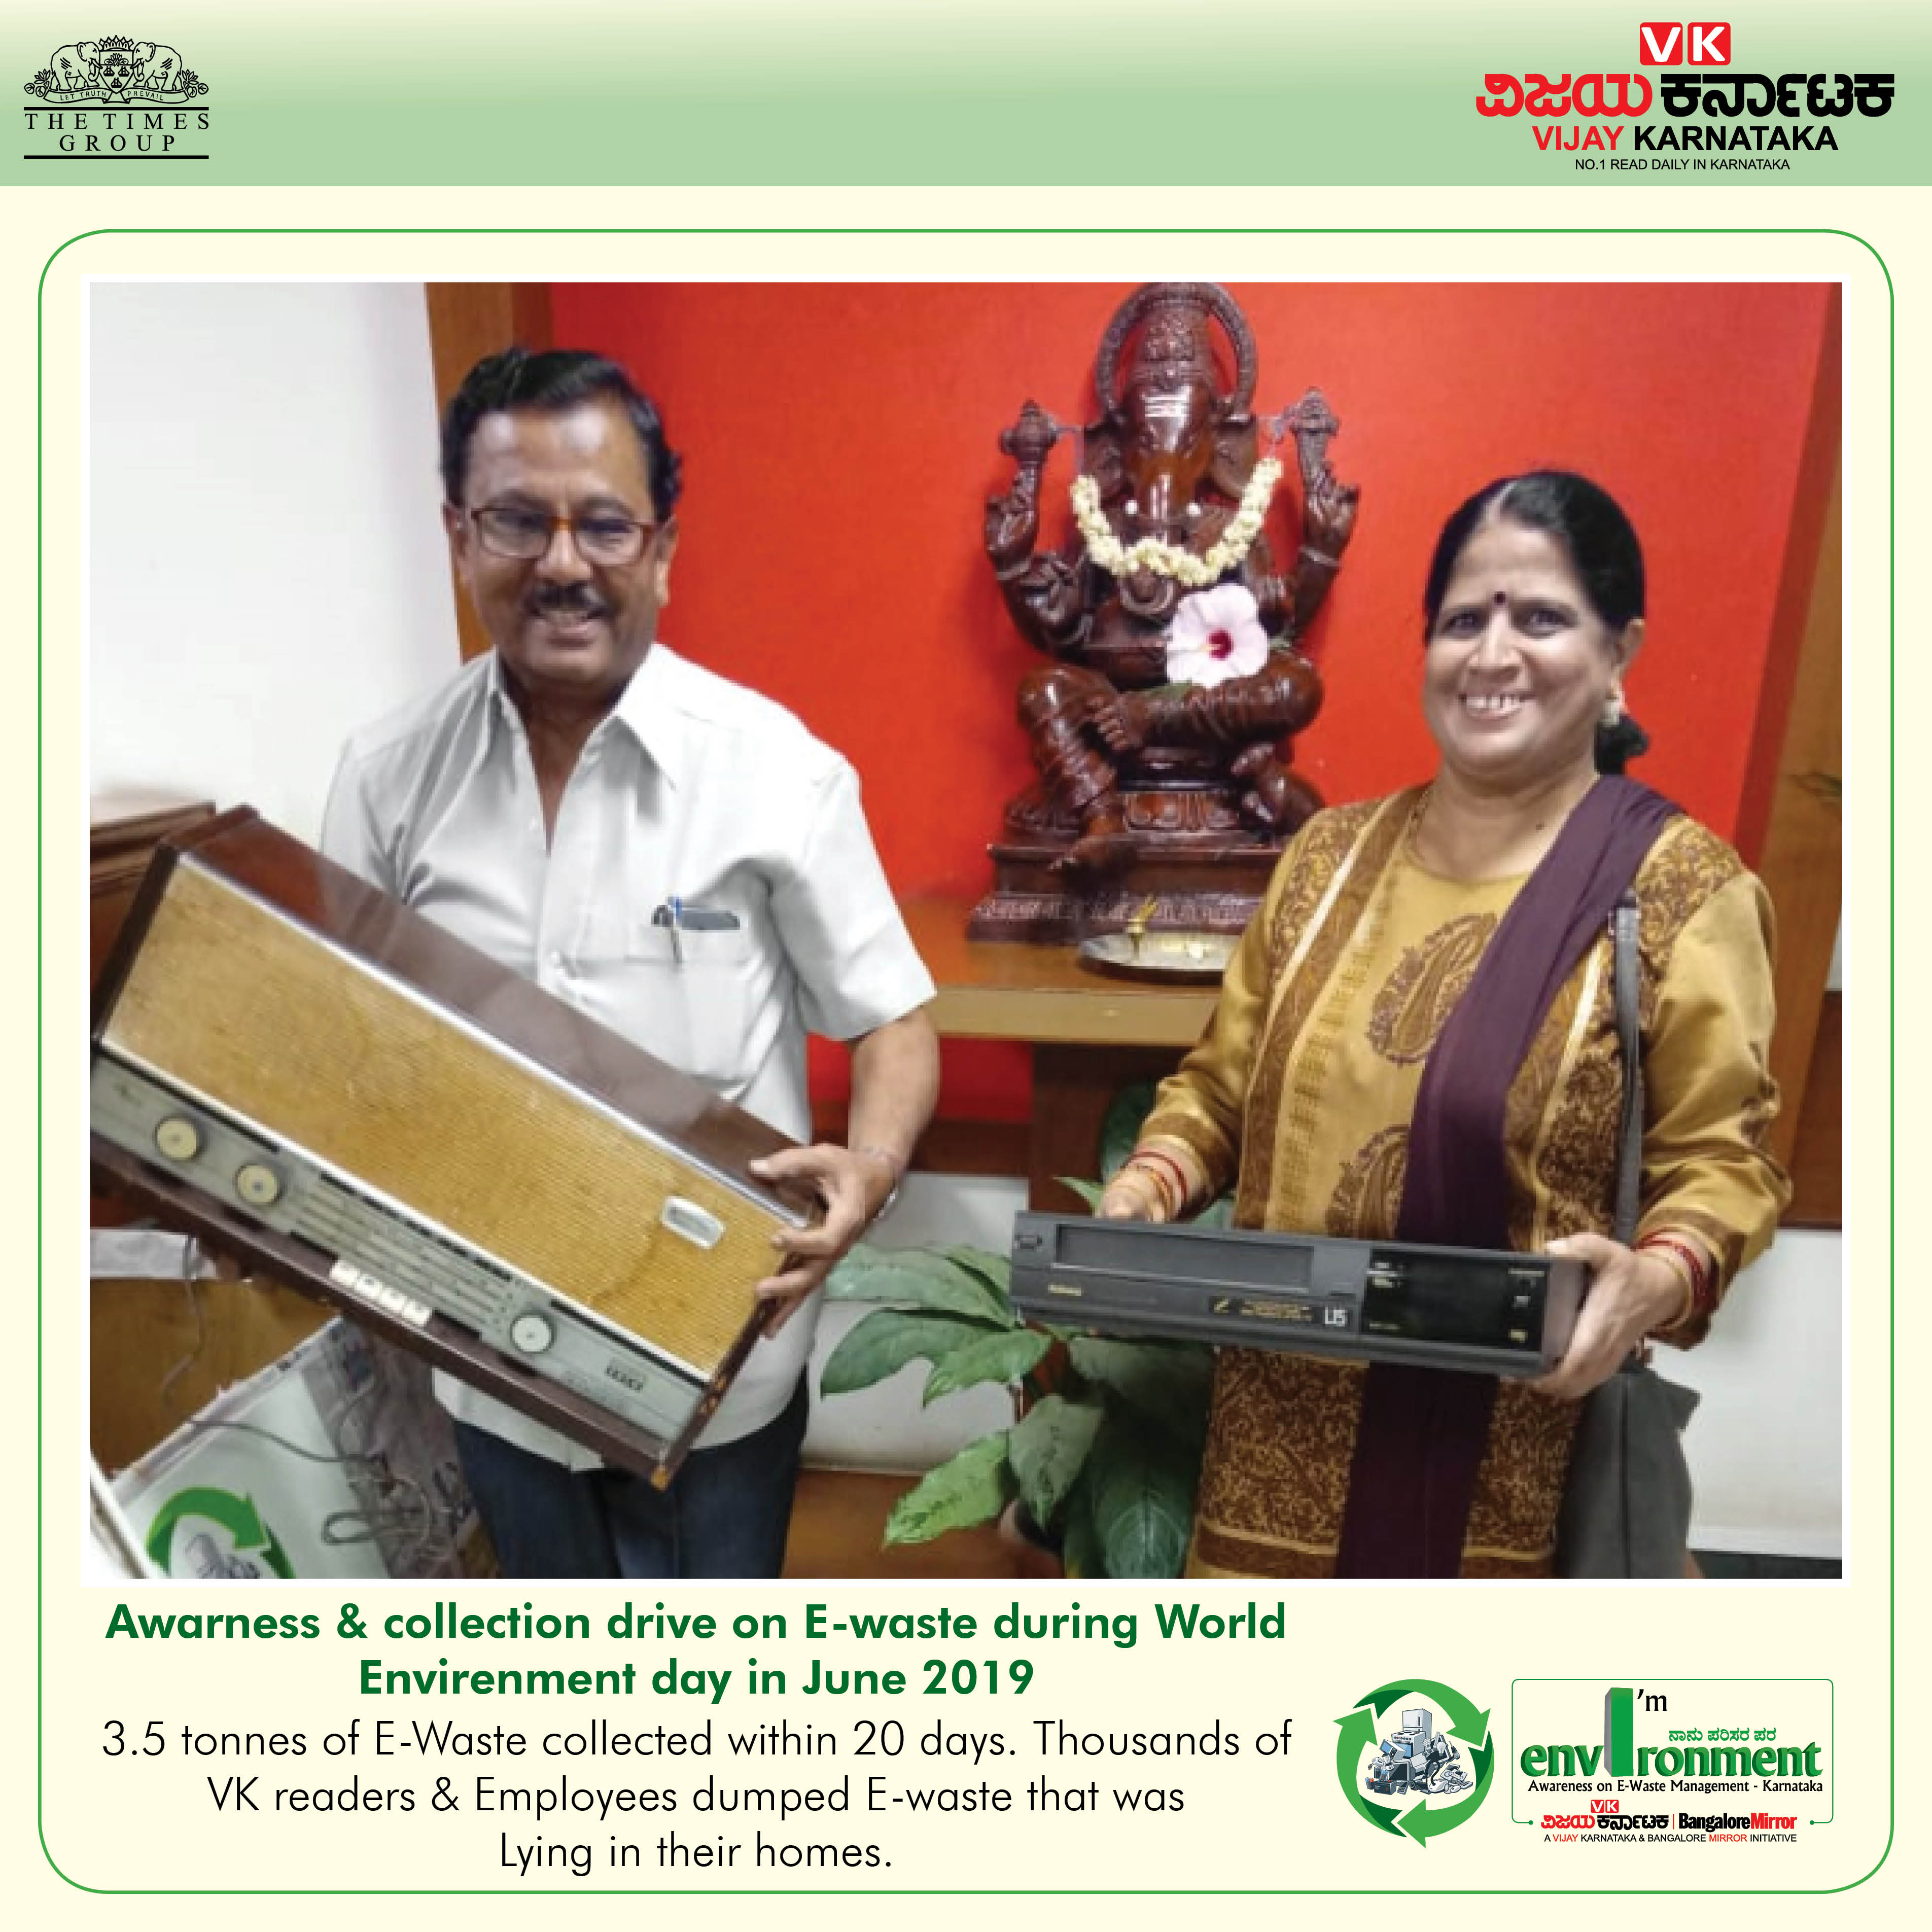 I'm Environment - Awareness & Collection of E-Waste in Karnataka